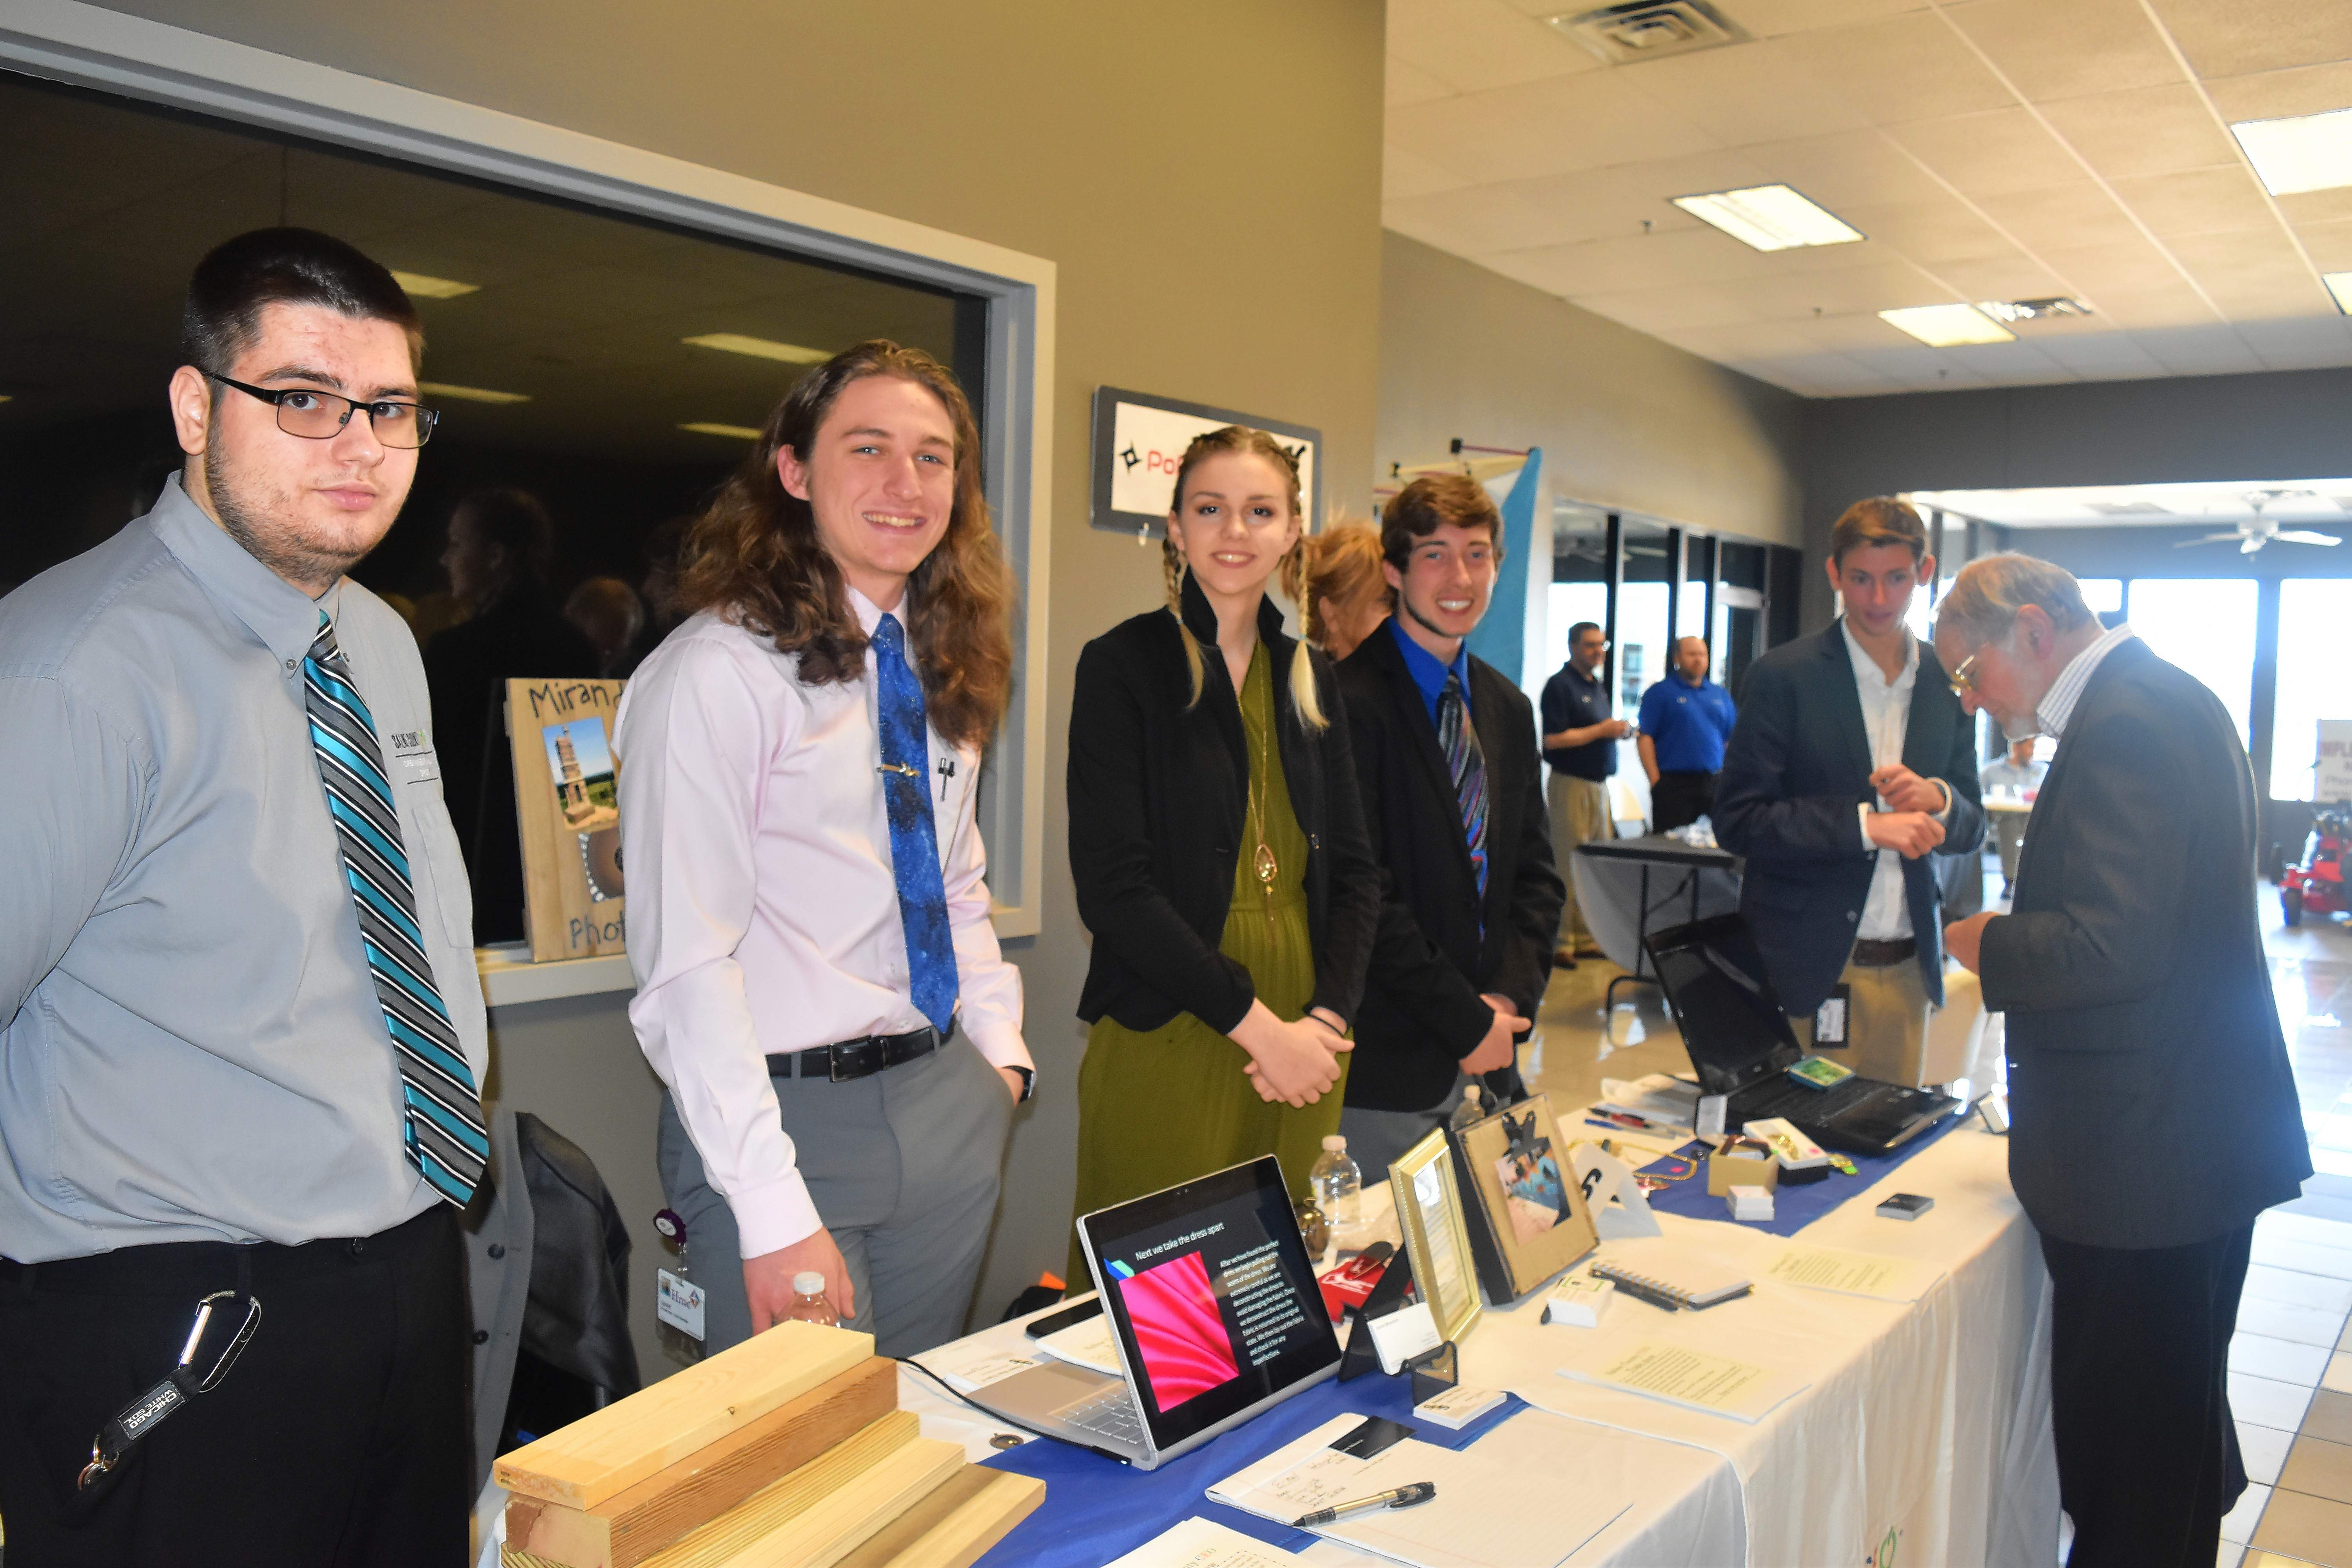 Members of the Saline County CEO group display their businesses at the Business Expo.